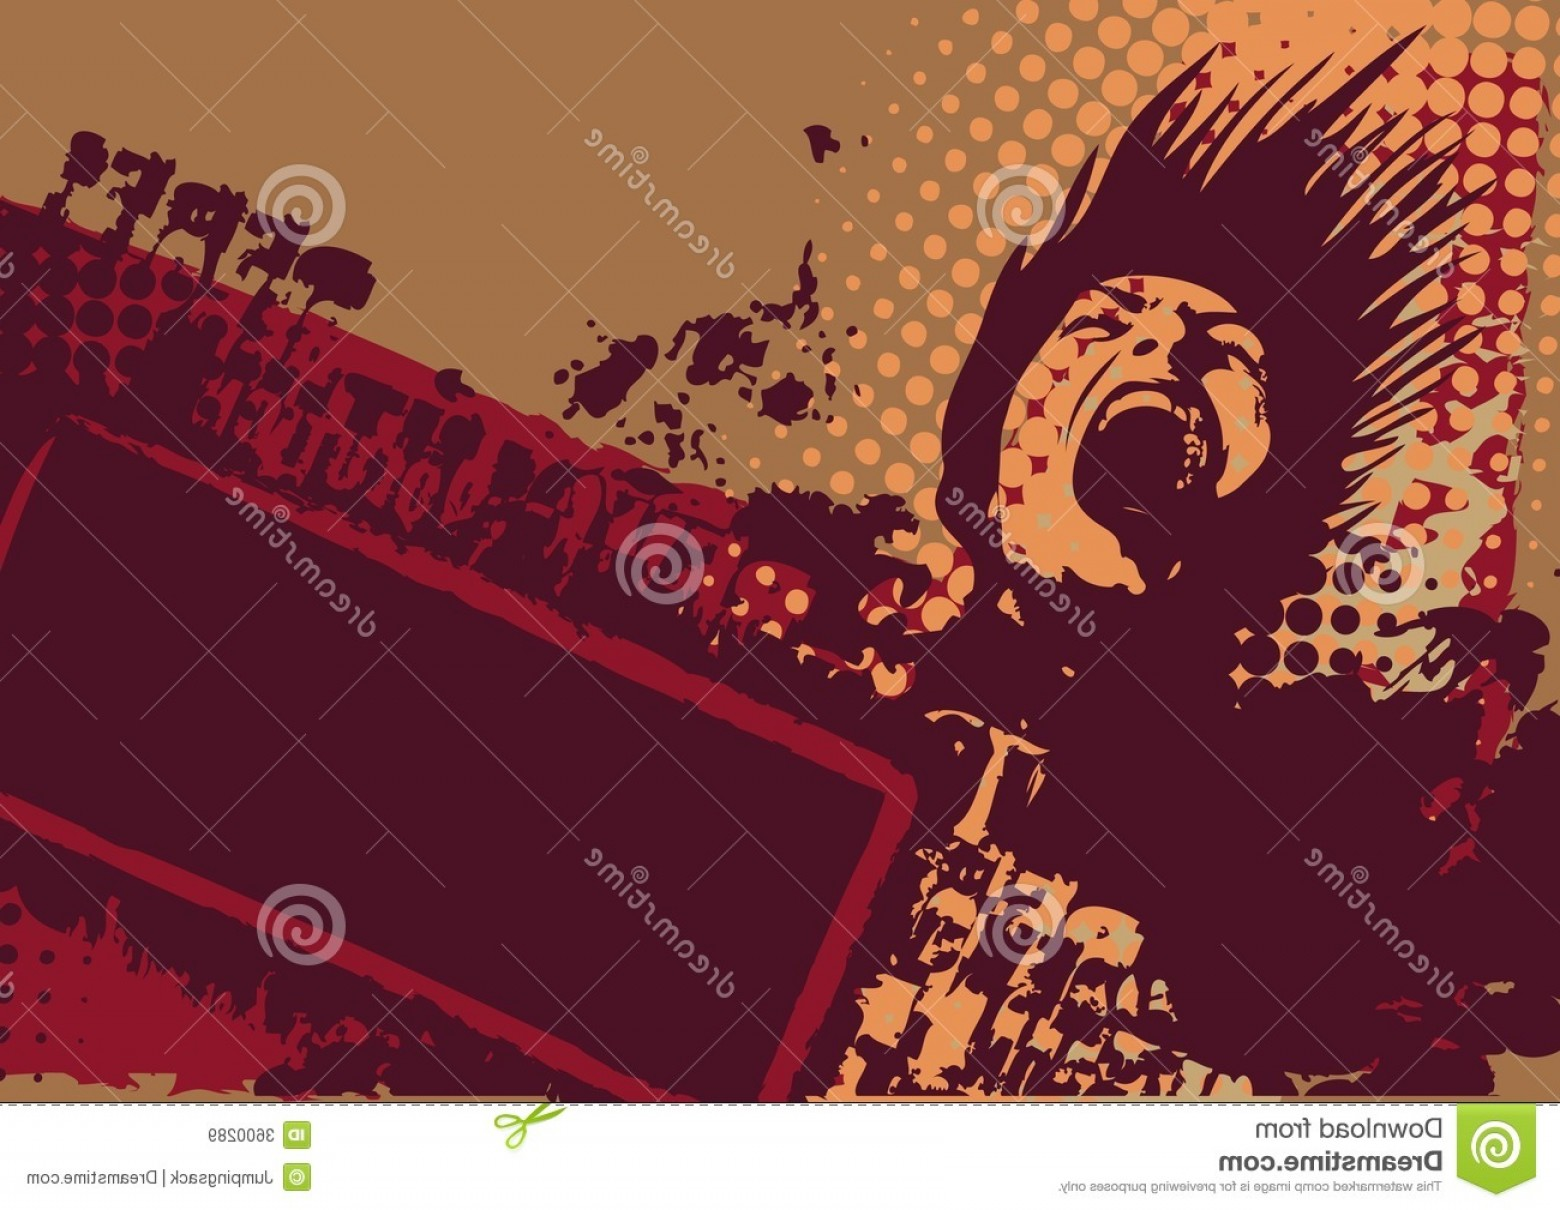 Grunge Background Vector Graphic: Royalty Free Stock Images Vector Grunge Background Image